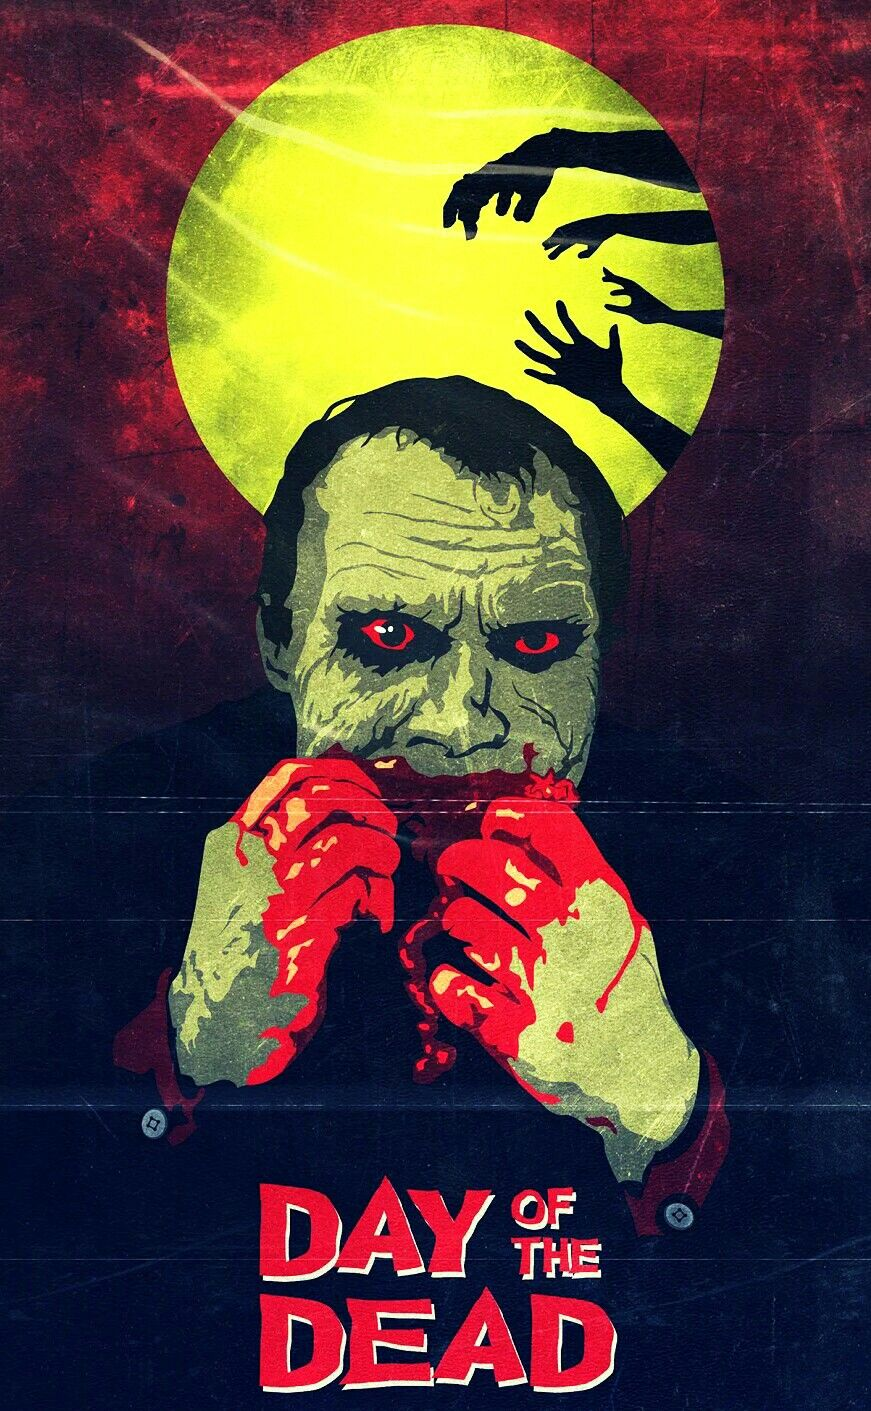 DAY OF THE DEAD (With images) Horror movie art, Scary